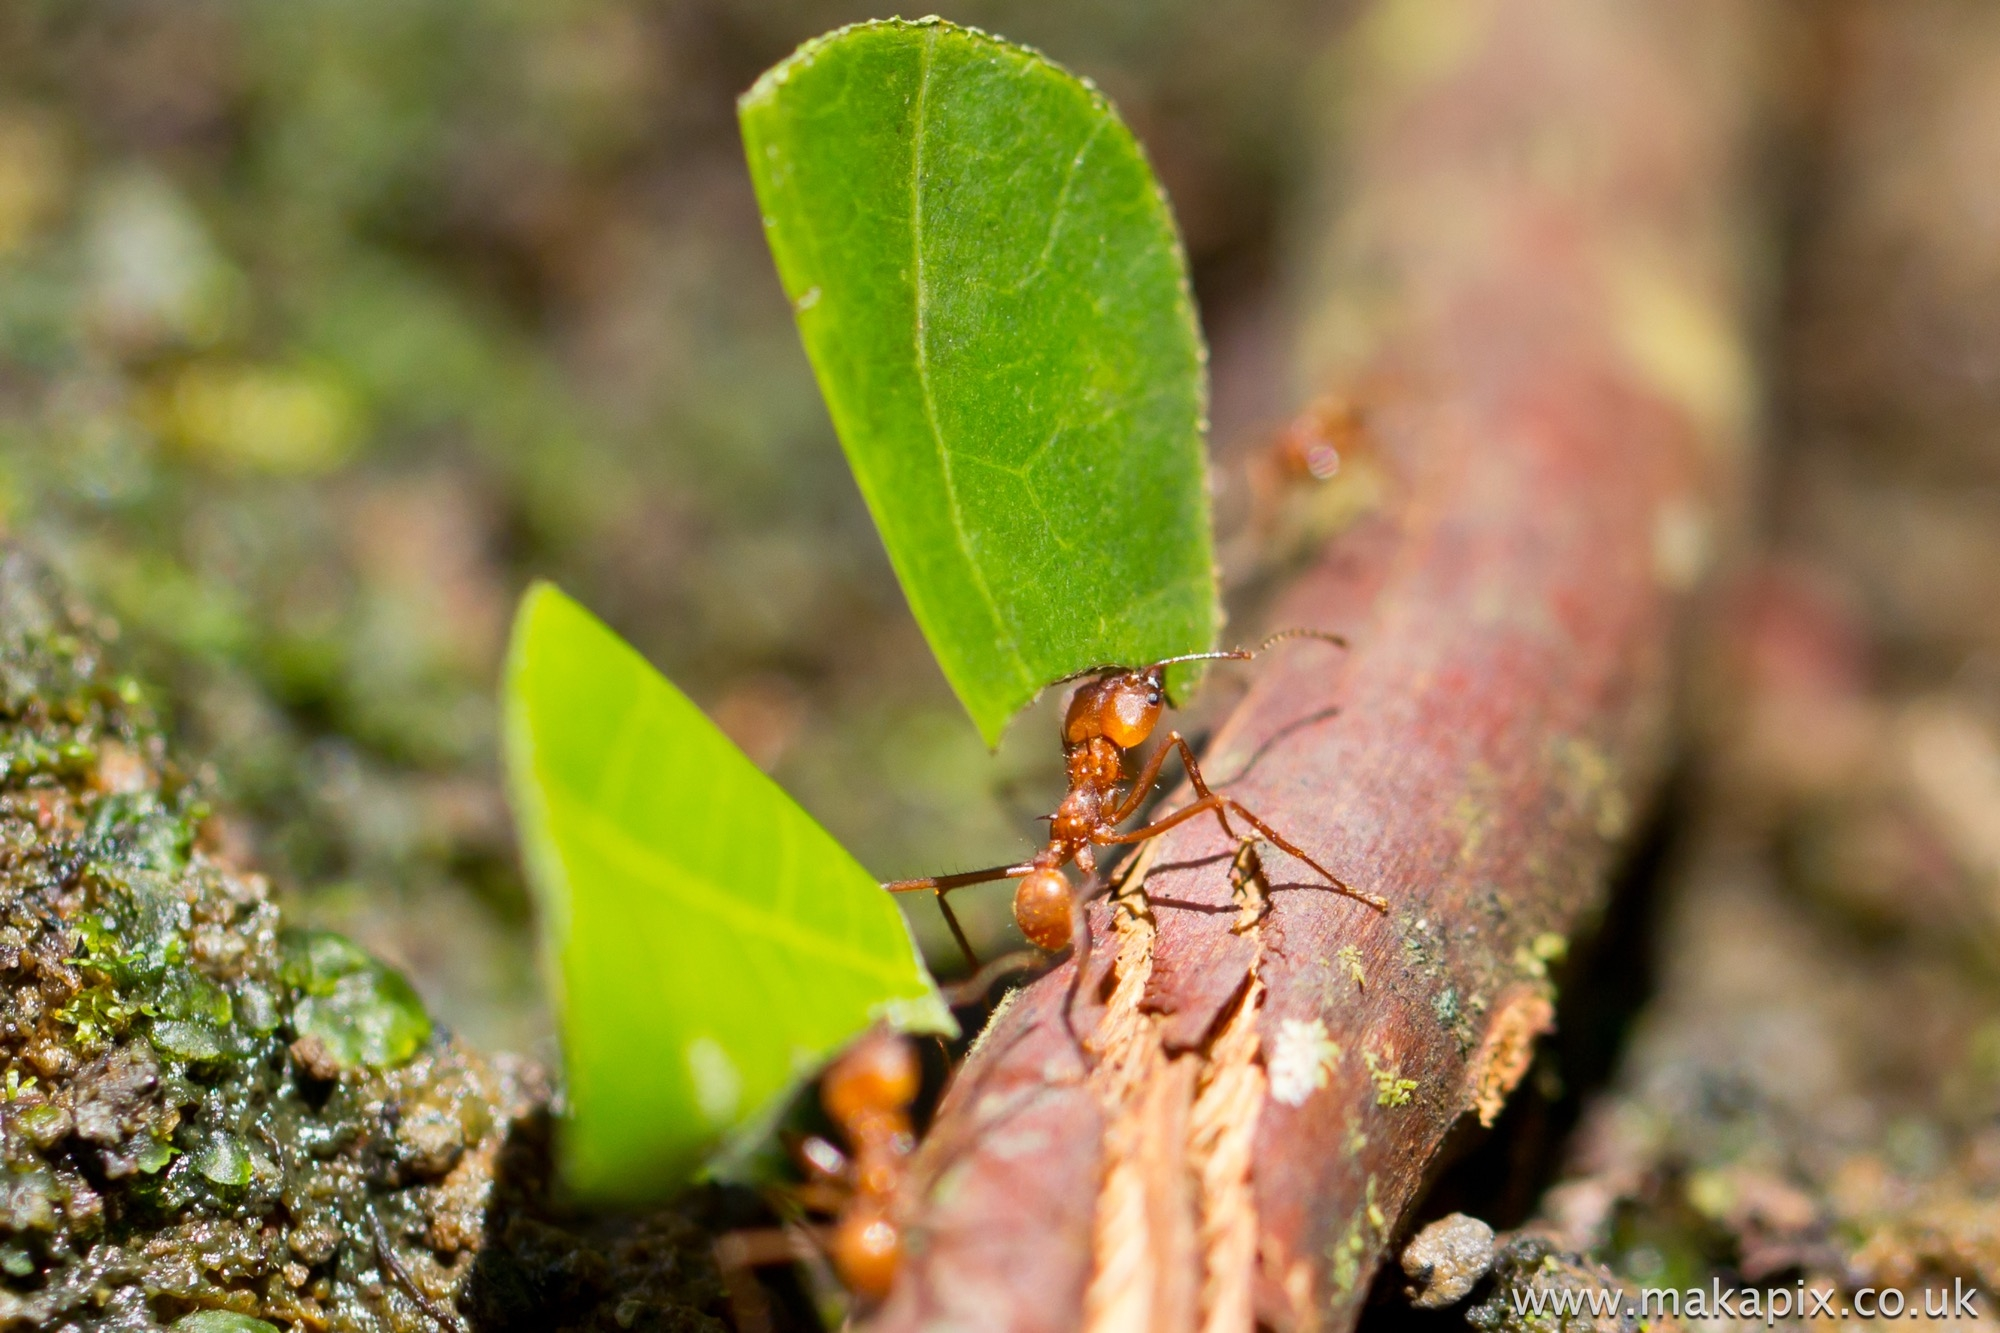 Leaf Cutter Ant Costa Rica 2014